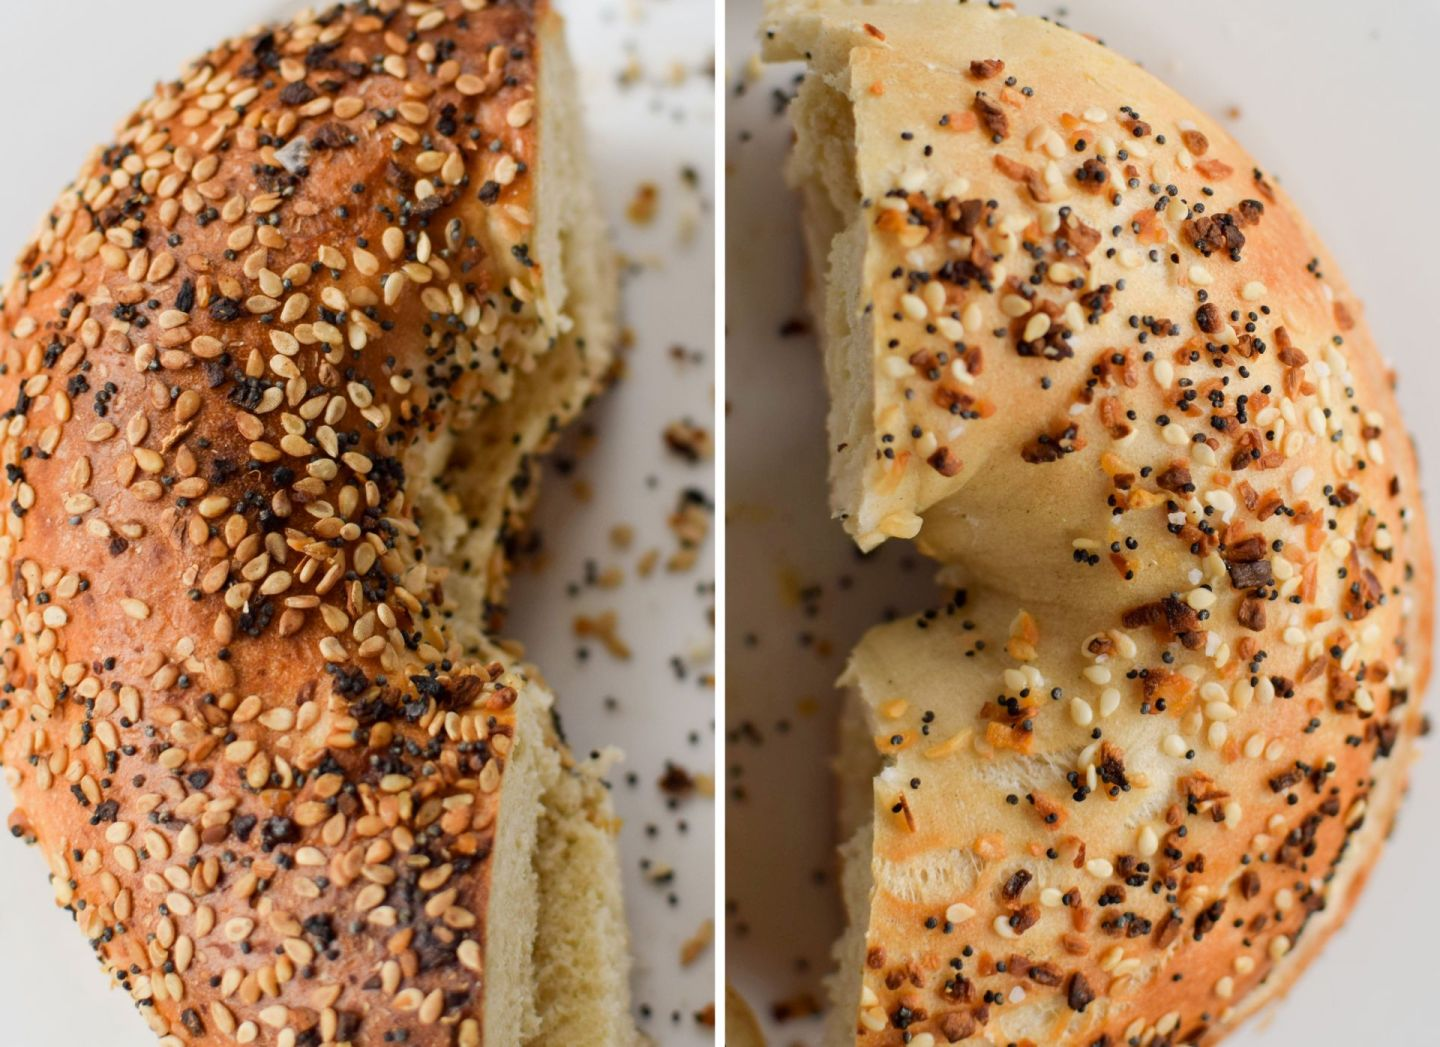 best bagel in DC - call your mother - buffalo and bergen - bullfrog bagels - bethesda bagels - bagels on capitol hill - bagels in DC - where to get bagels in DC